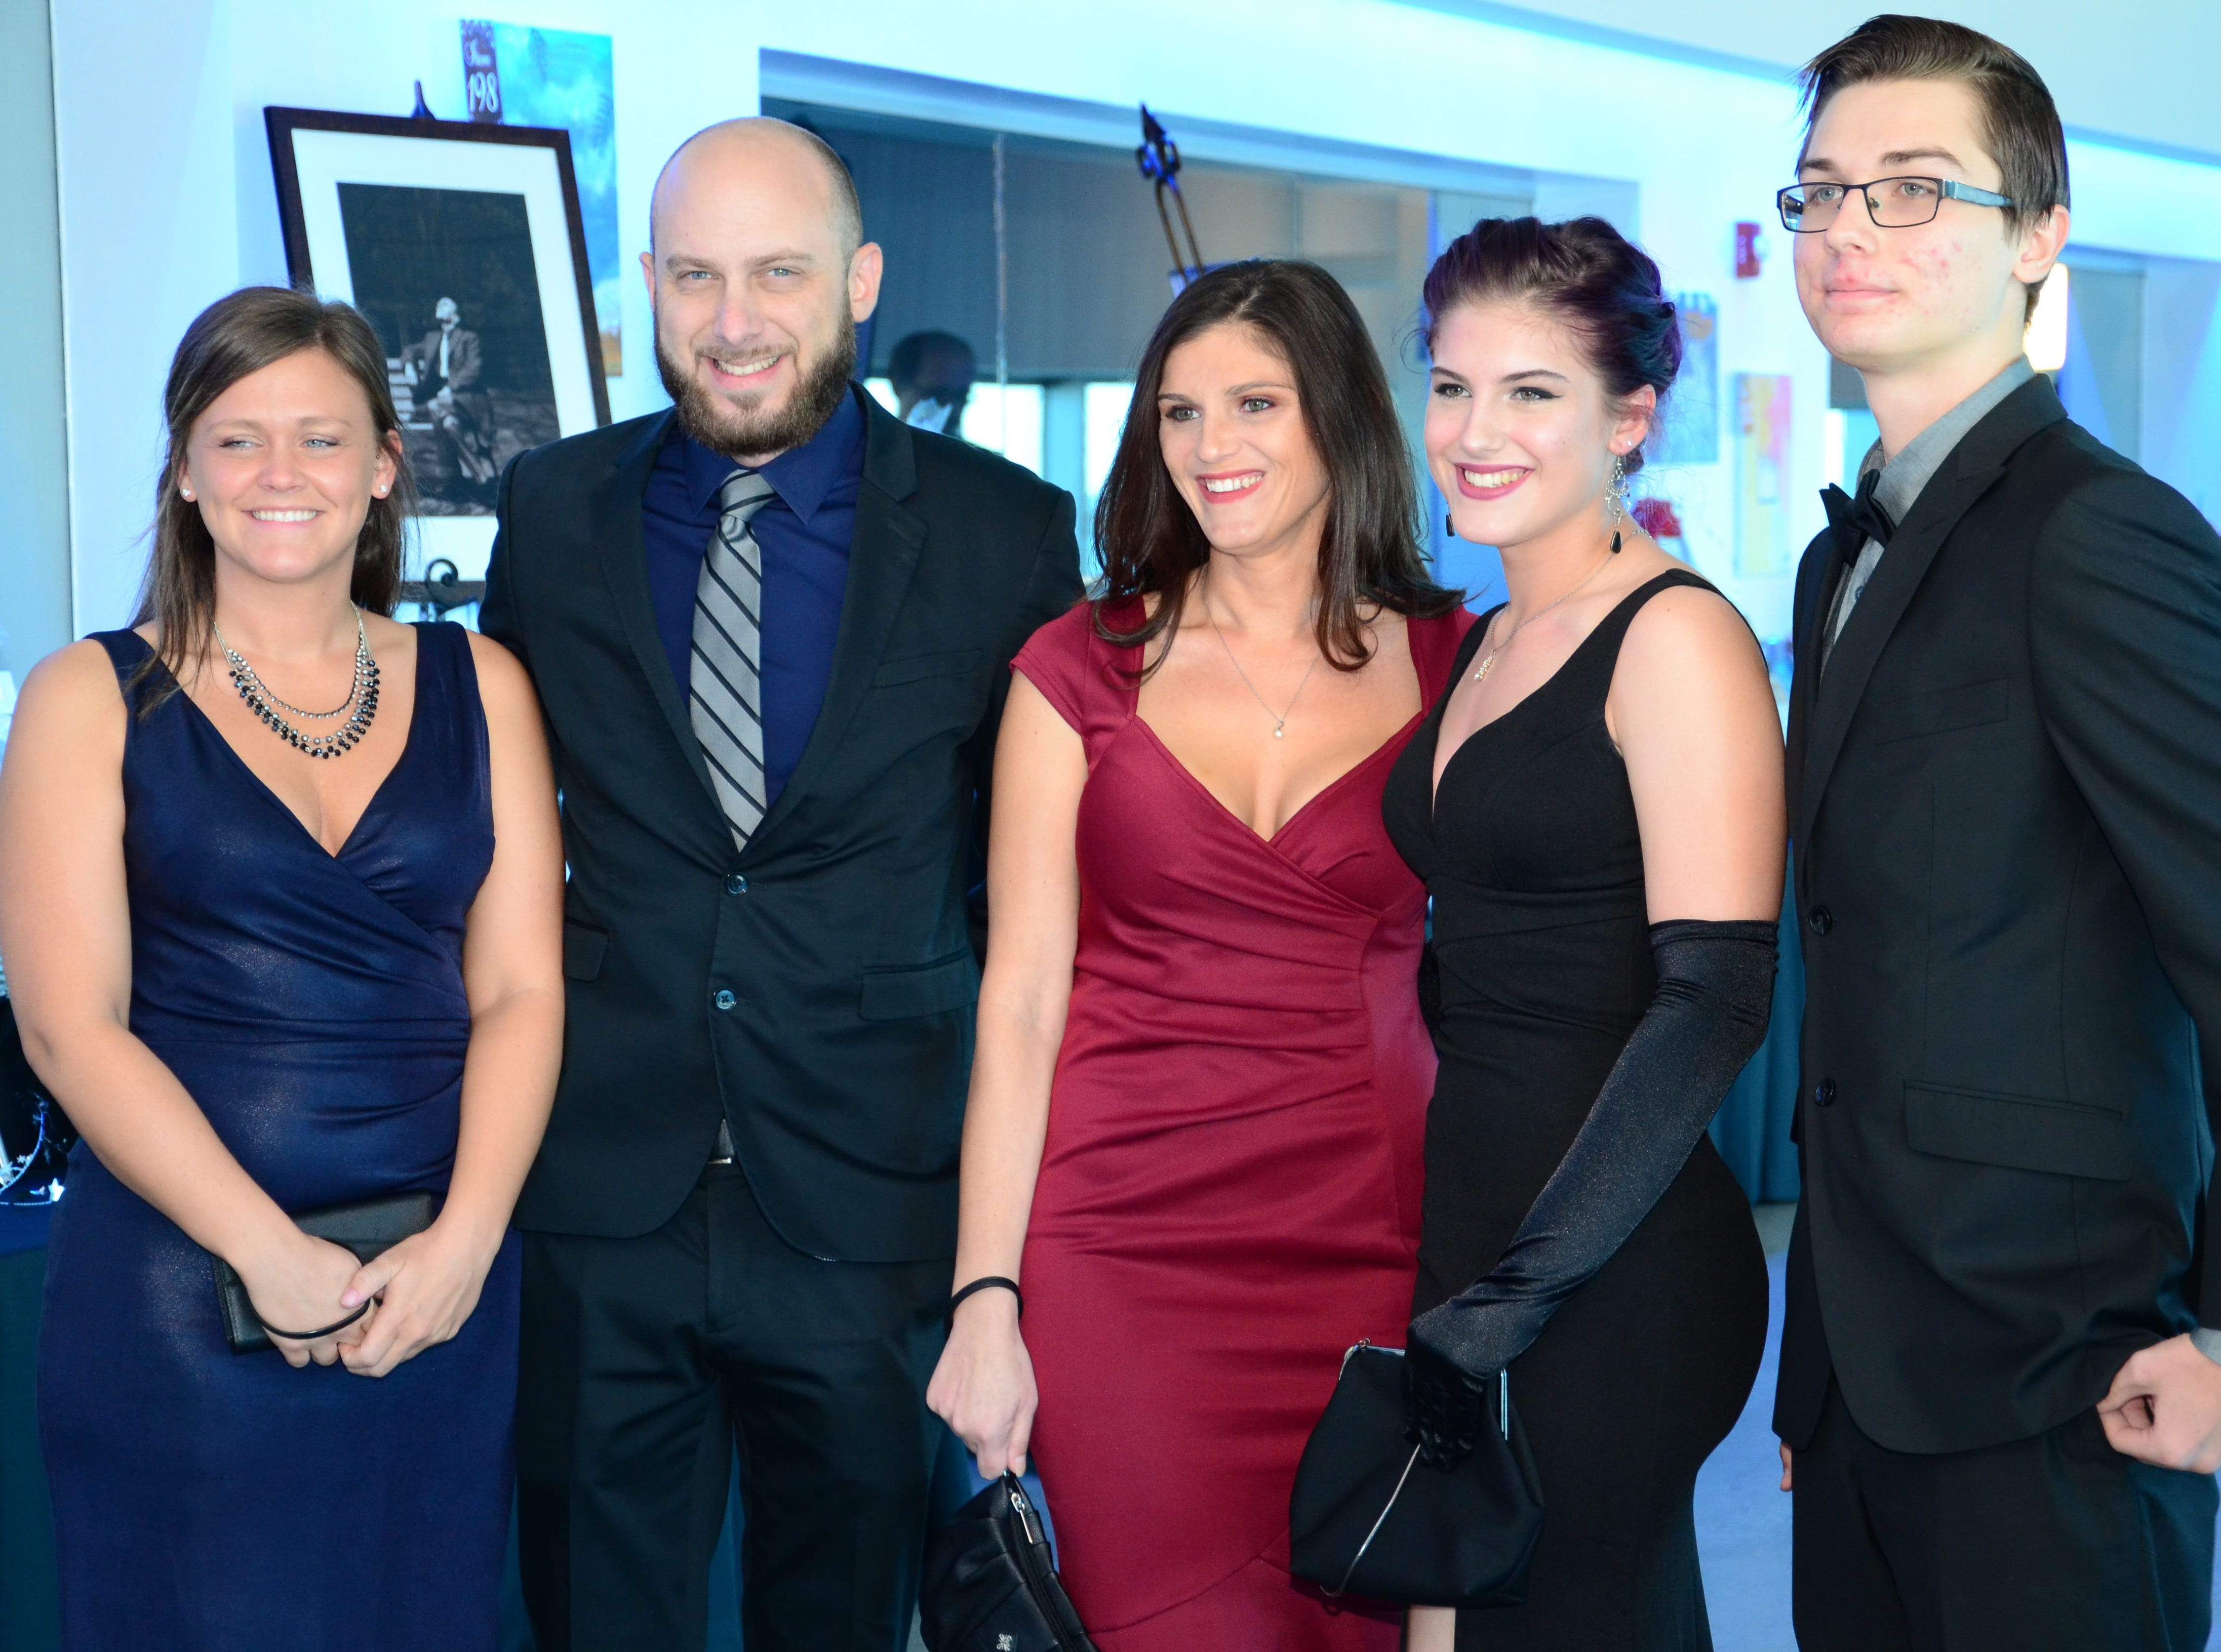 Samantha Hill, Dan Maggard, Danielle Lovett, Gabrielle Maggard and Mark Ovens arrive Saturday evening at Port Canaveral to be a part of the Fly Me to The Moon gala.